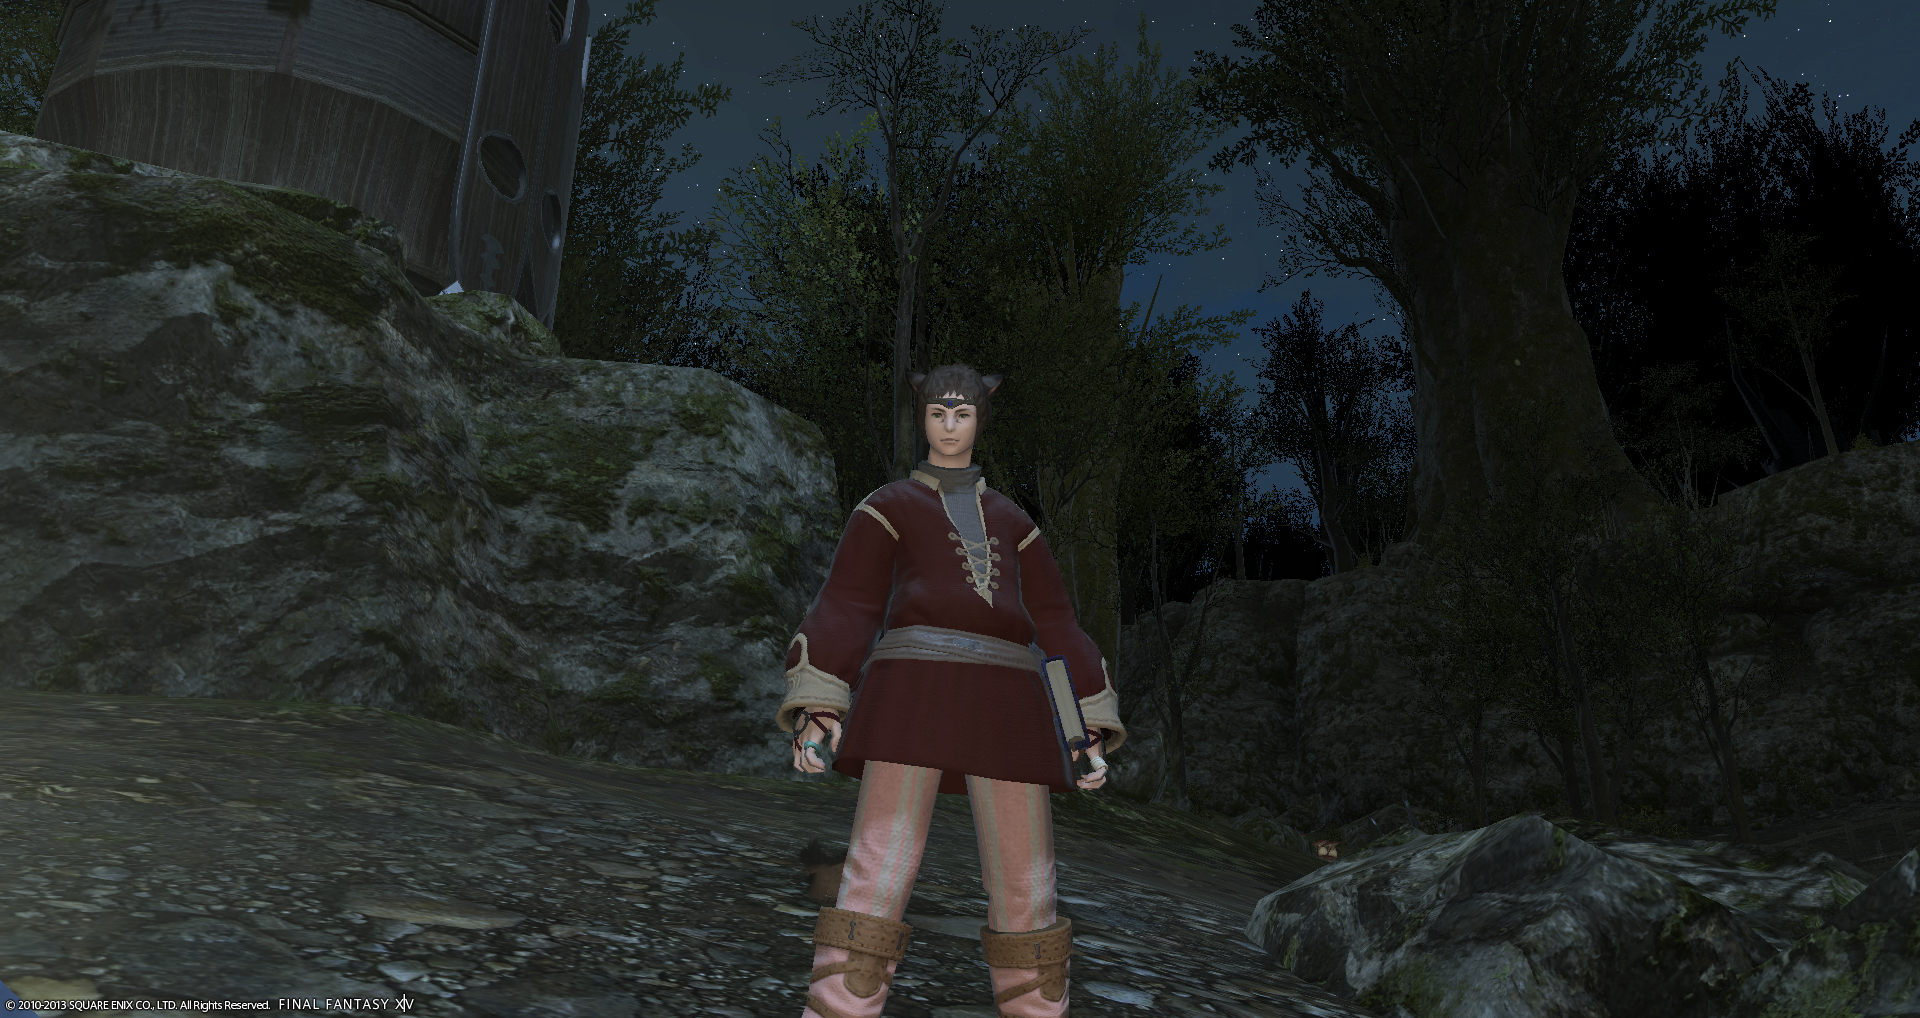 reve ffxiv cute fantastic awesome picture this comment cheesecake phase contest wanted just